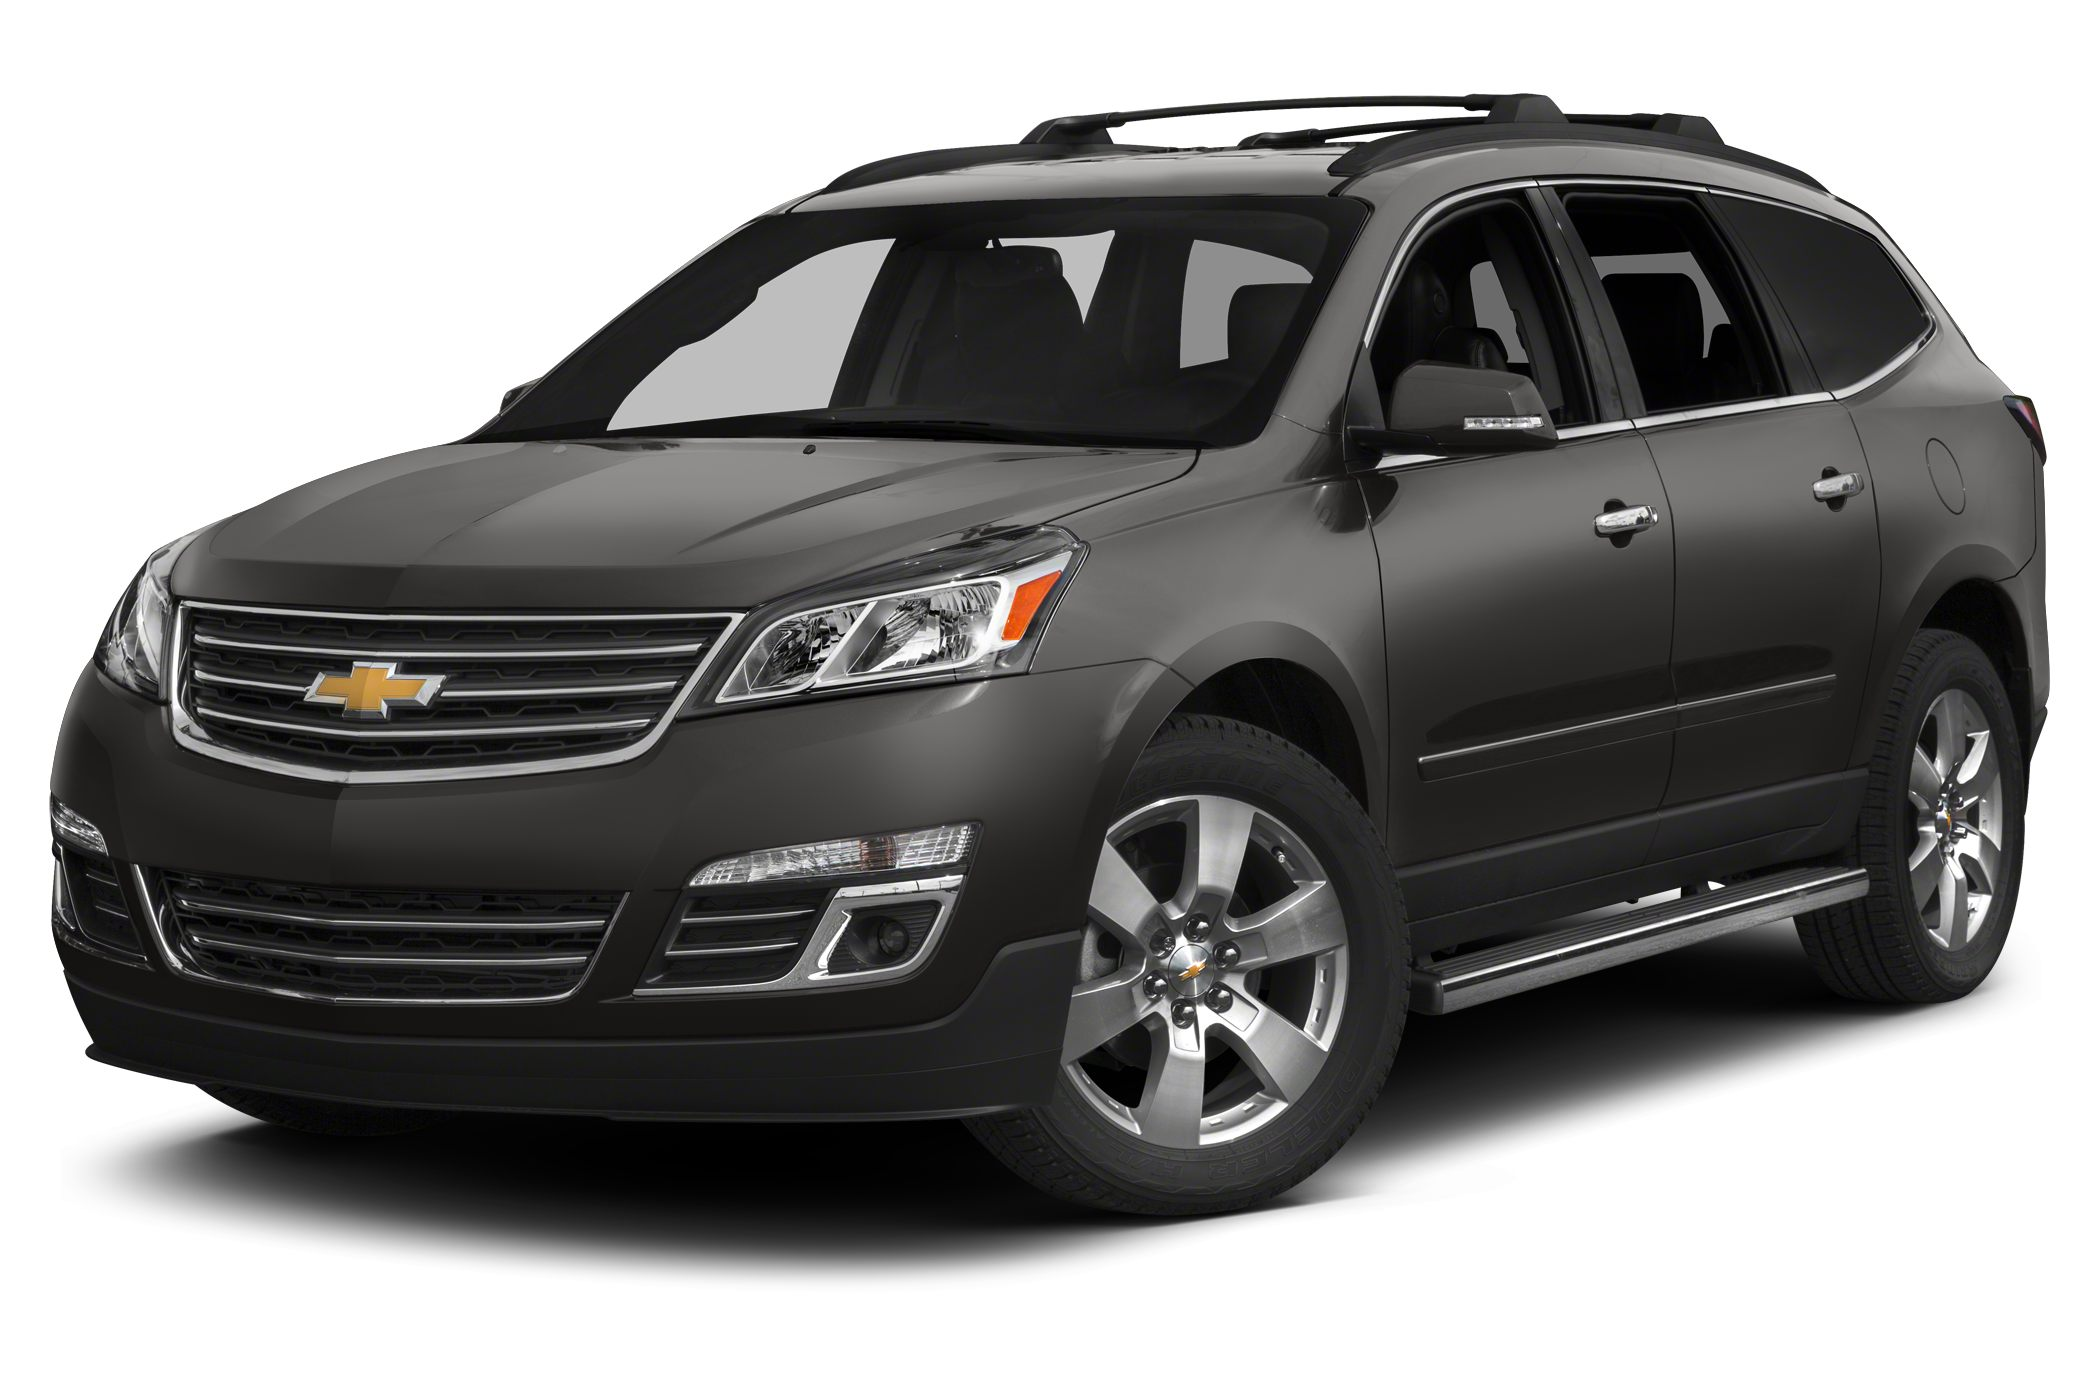 2014 Chevrolet Traverse LTZ SUV for sale in Indianapolis for $46,365 with 0 miles